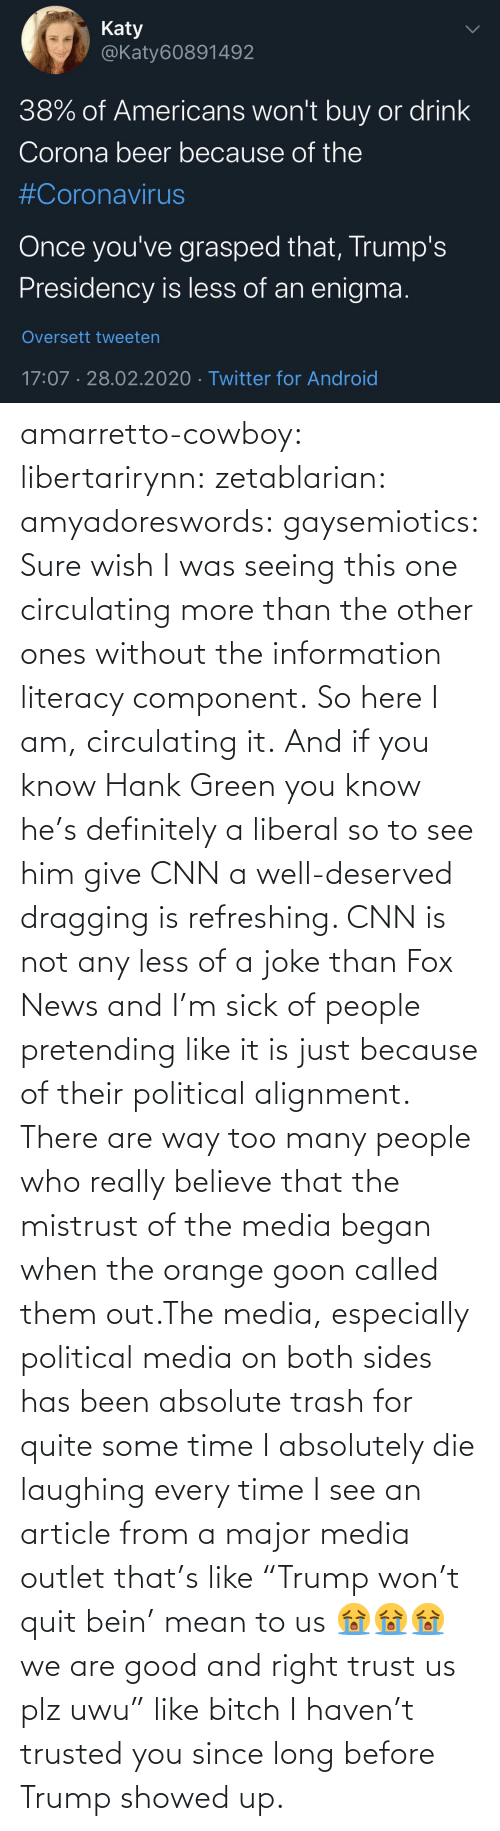 "absolutely: amarretto-cowboy:  libertarirynn:  zetablarian:  amyadoreswords:   gaysemiotics:       Sure wish I was seeing this one circulating more than the other ones without the information literacy component. So here I am, circulating it.    And if you know Hank Green you know he's definitely a liberal so to see him give CNN a well-deserved dragging is refreshing. CNN is not any less of a joke than Fox News and I'm sick of people pretending like it is just because of their political alignment.   There are way too many people who really believe that the mistrust of the media began when the orange goon called them out.The media, especially political media on both sides has been absolute trash for quite some time   I absolutely die laughing every time I see an article from a major media outlet that's like ""Trump won't quit bein' mean to us 😭😭😭 we are good and right trust us plz uwu"" like bitch I haven't trusted you since long before Trump showed up."